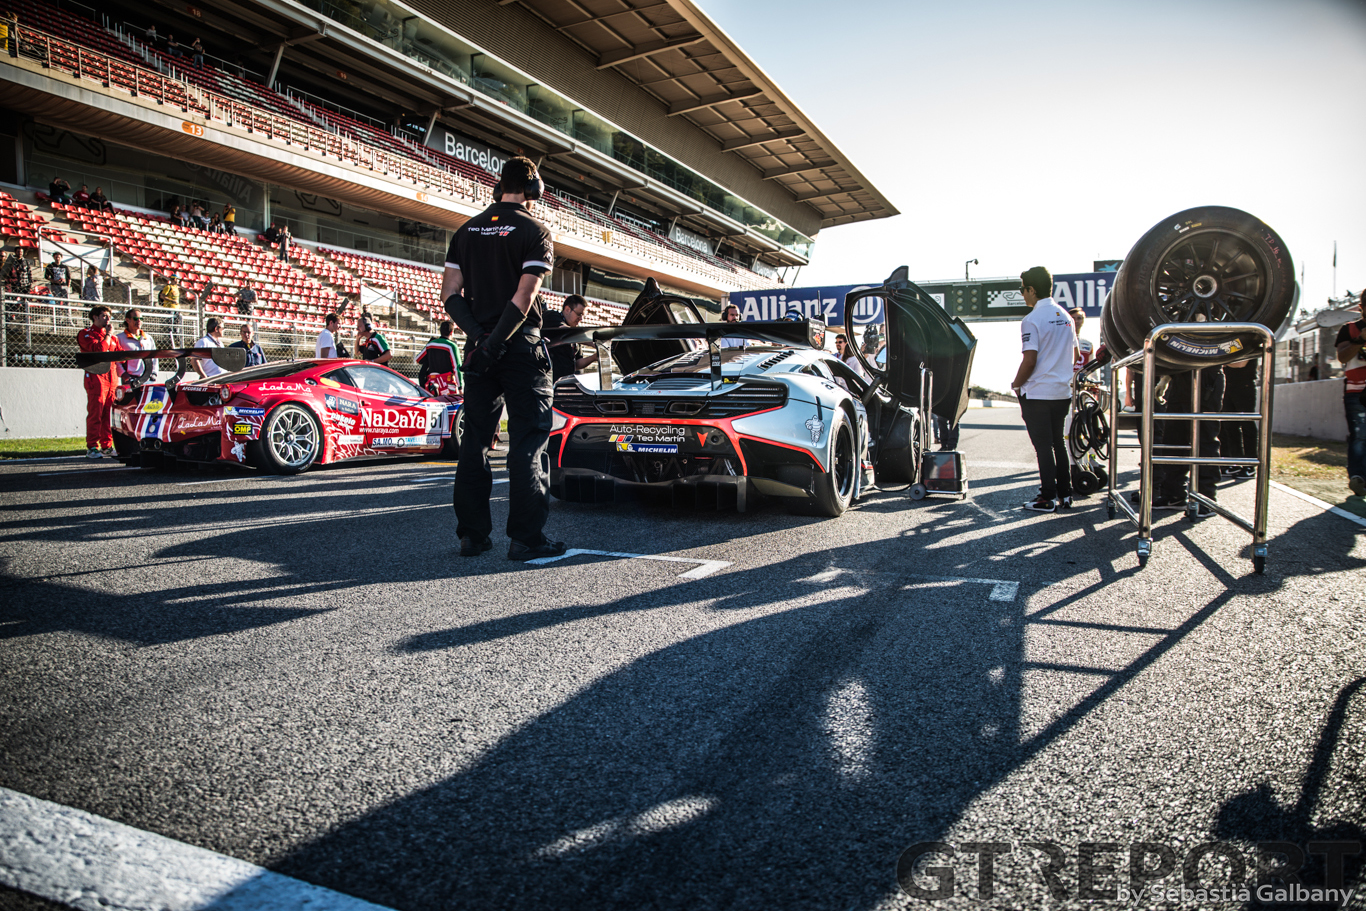 International GT Open Barcelona race report: Dominion